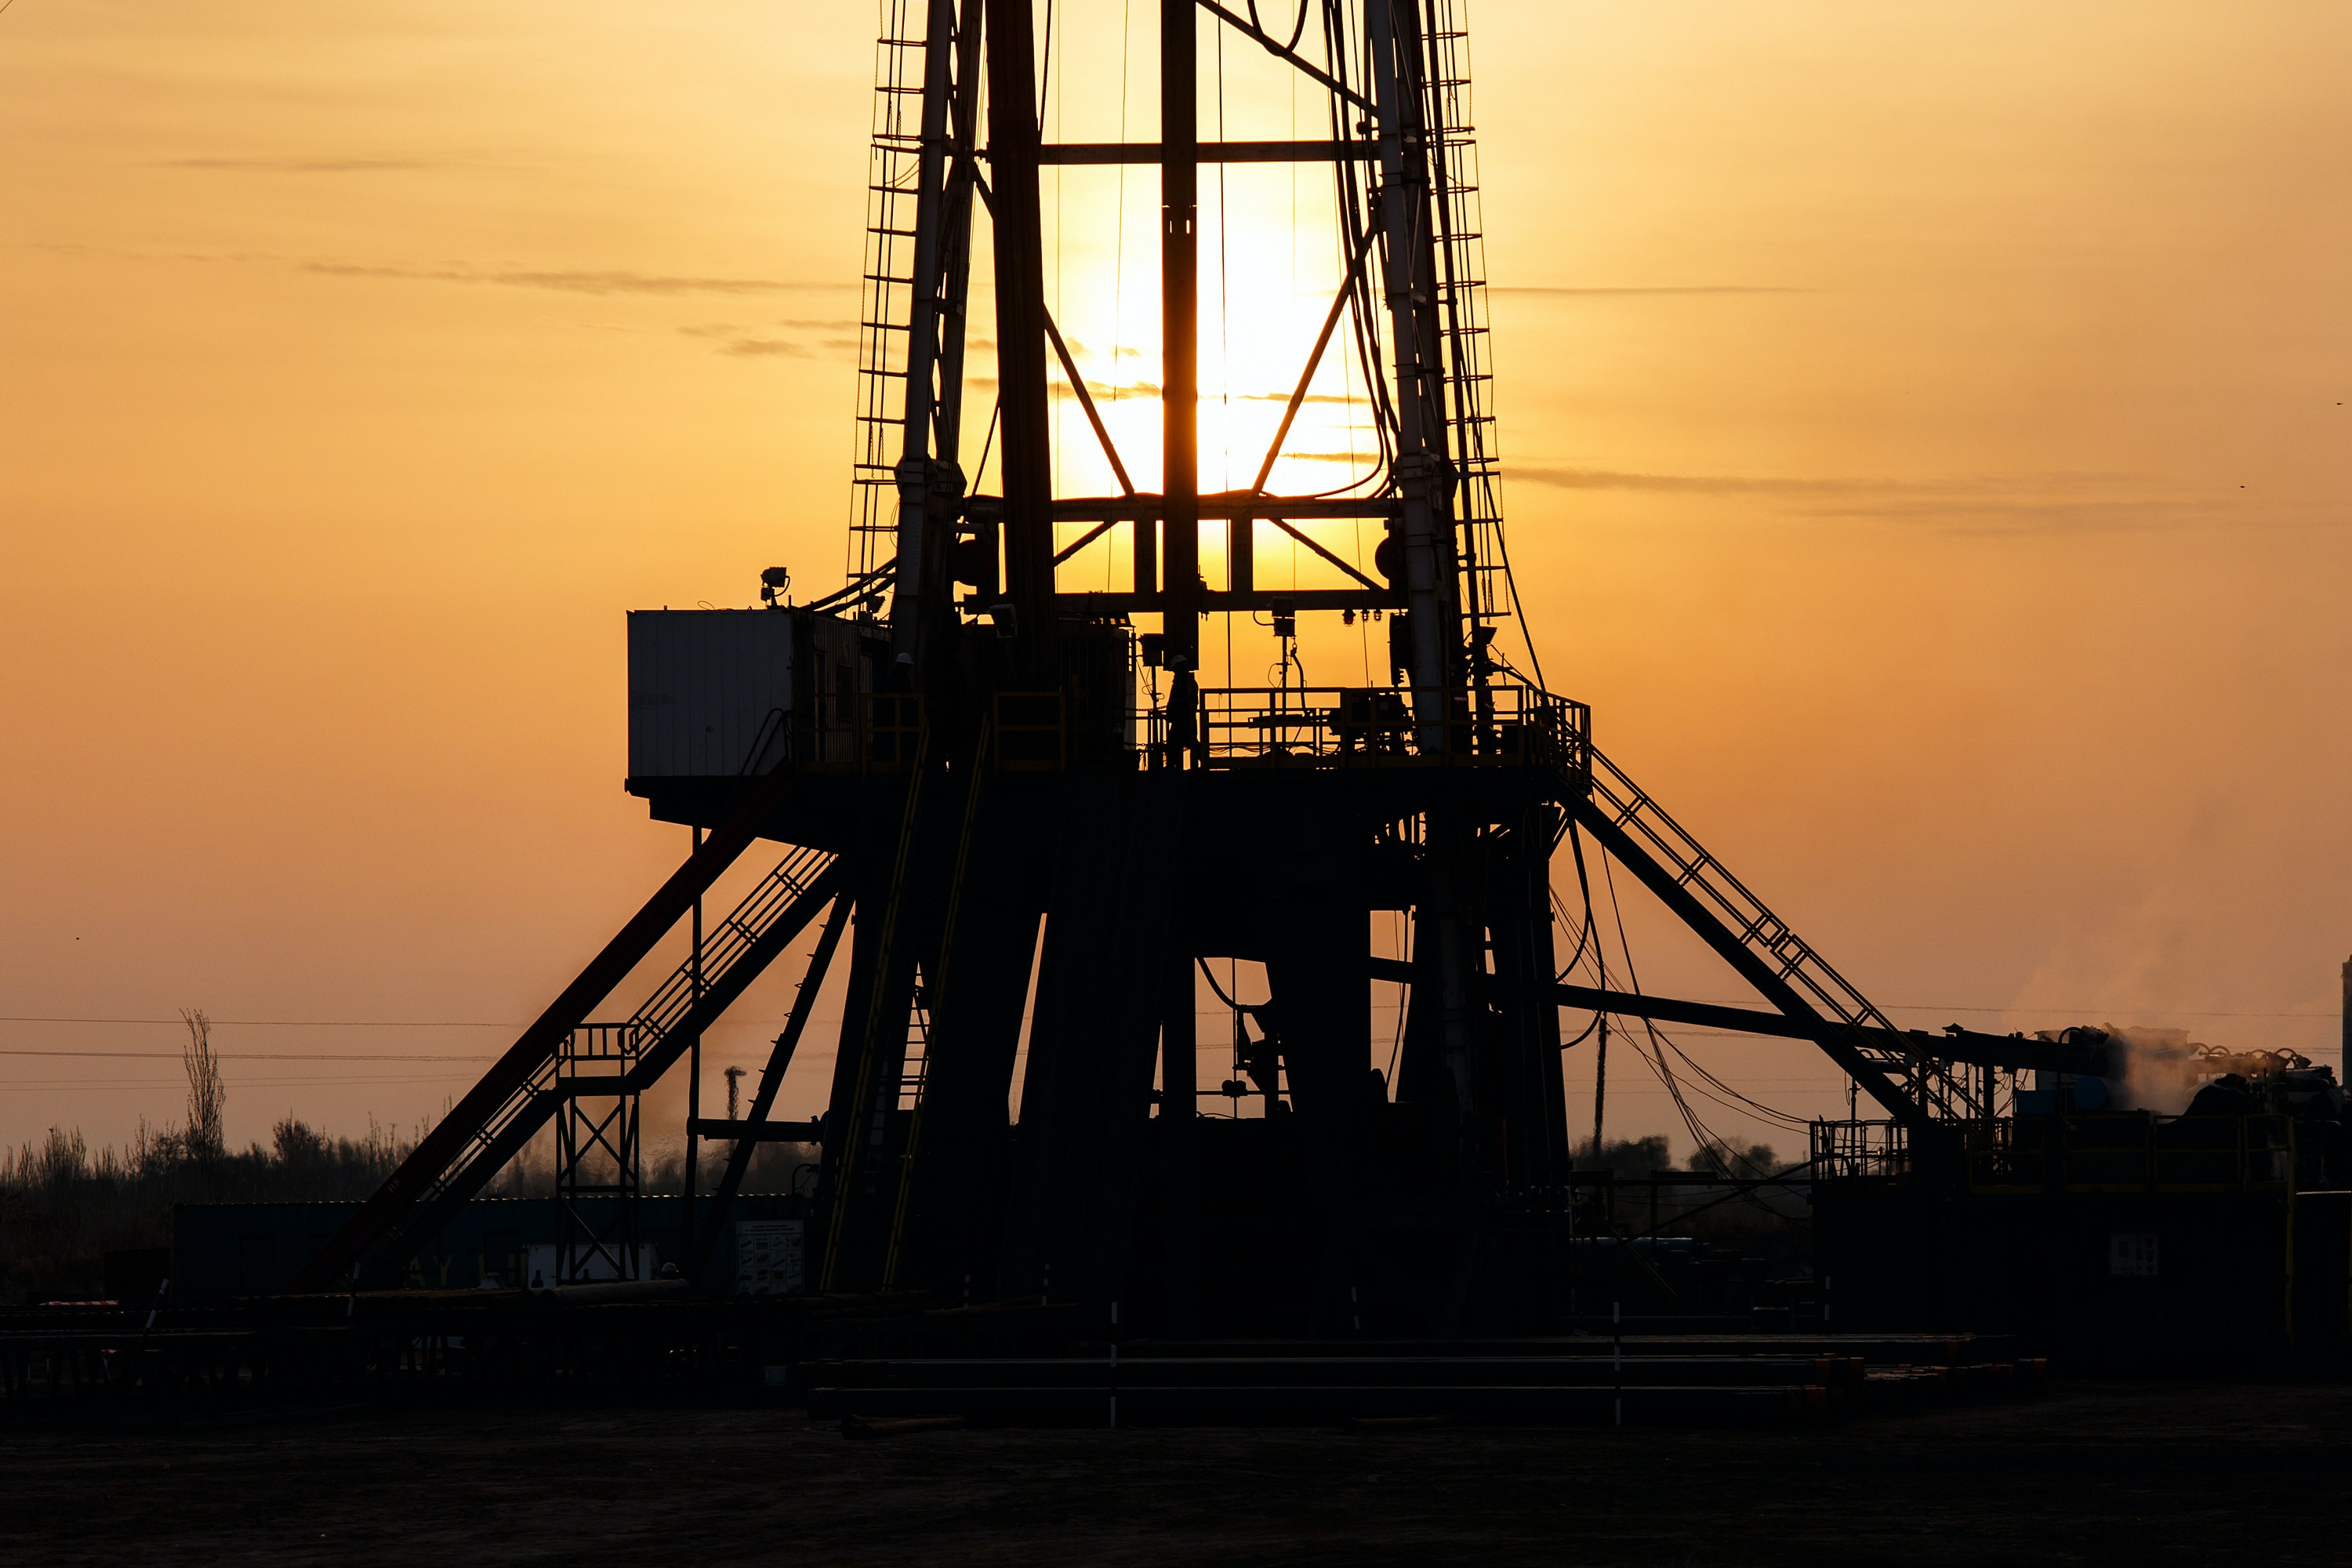 Image of an oil rig at sunset